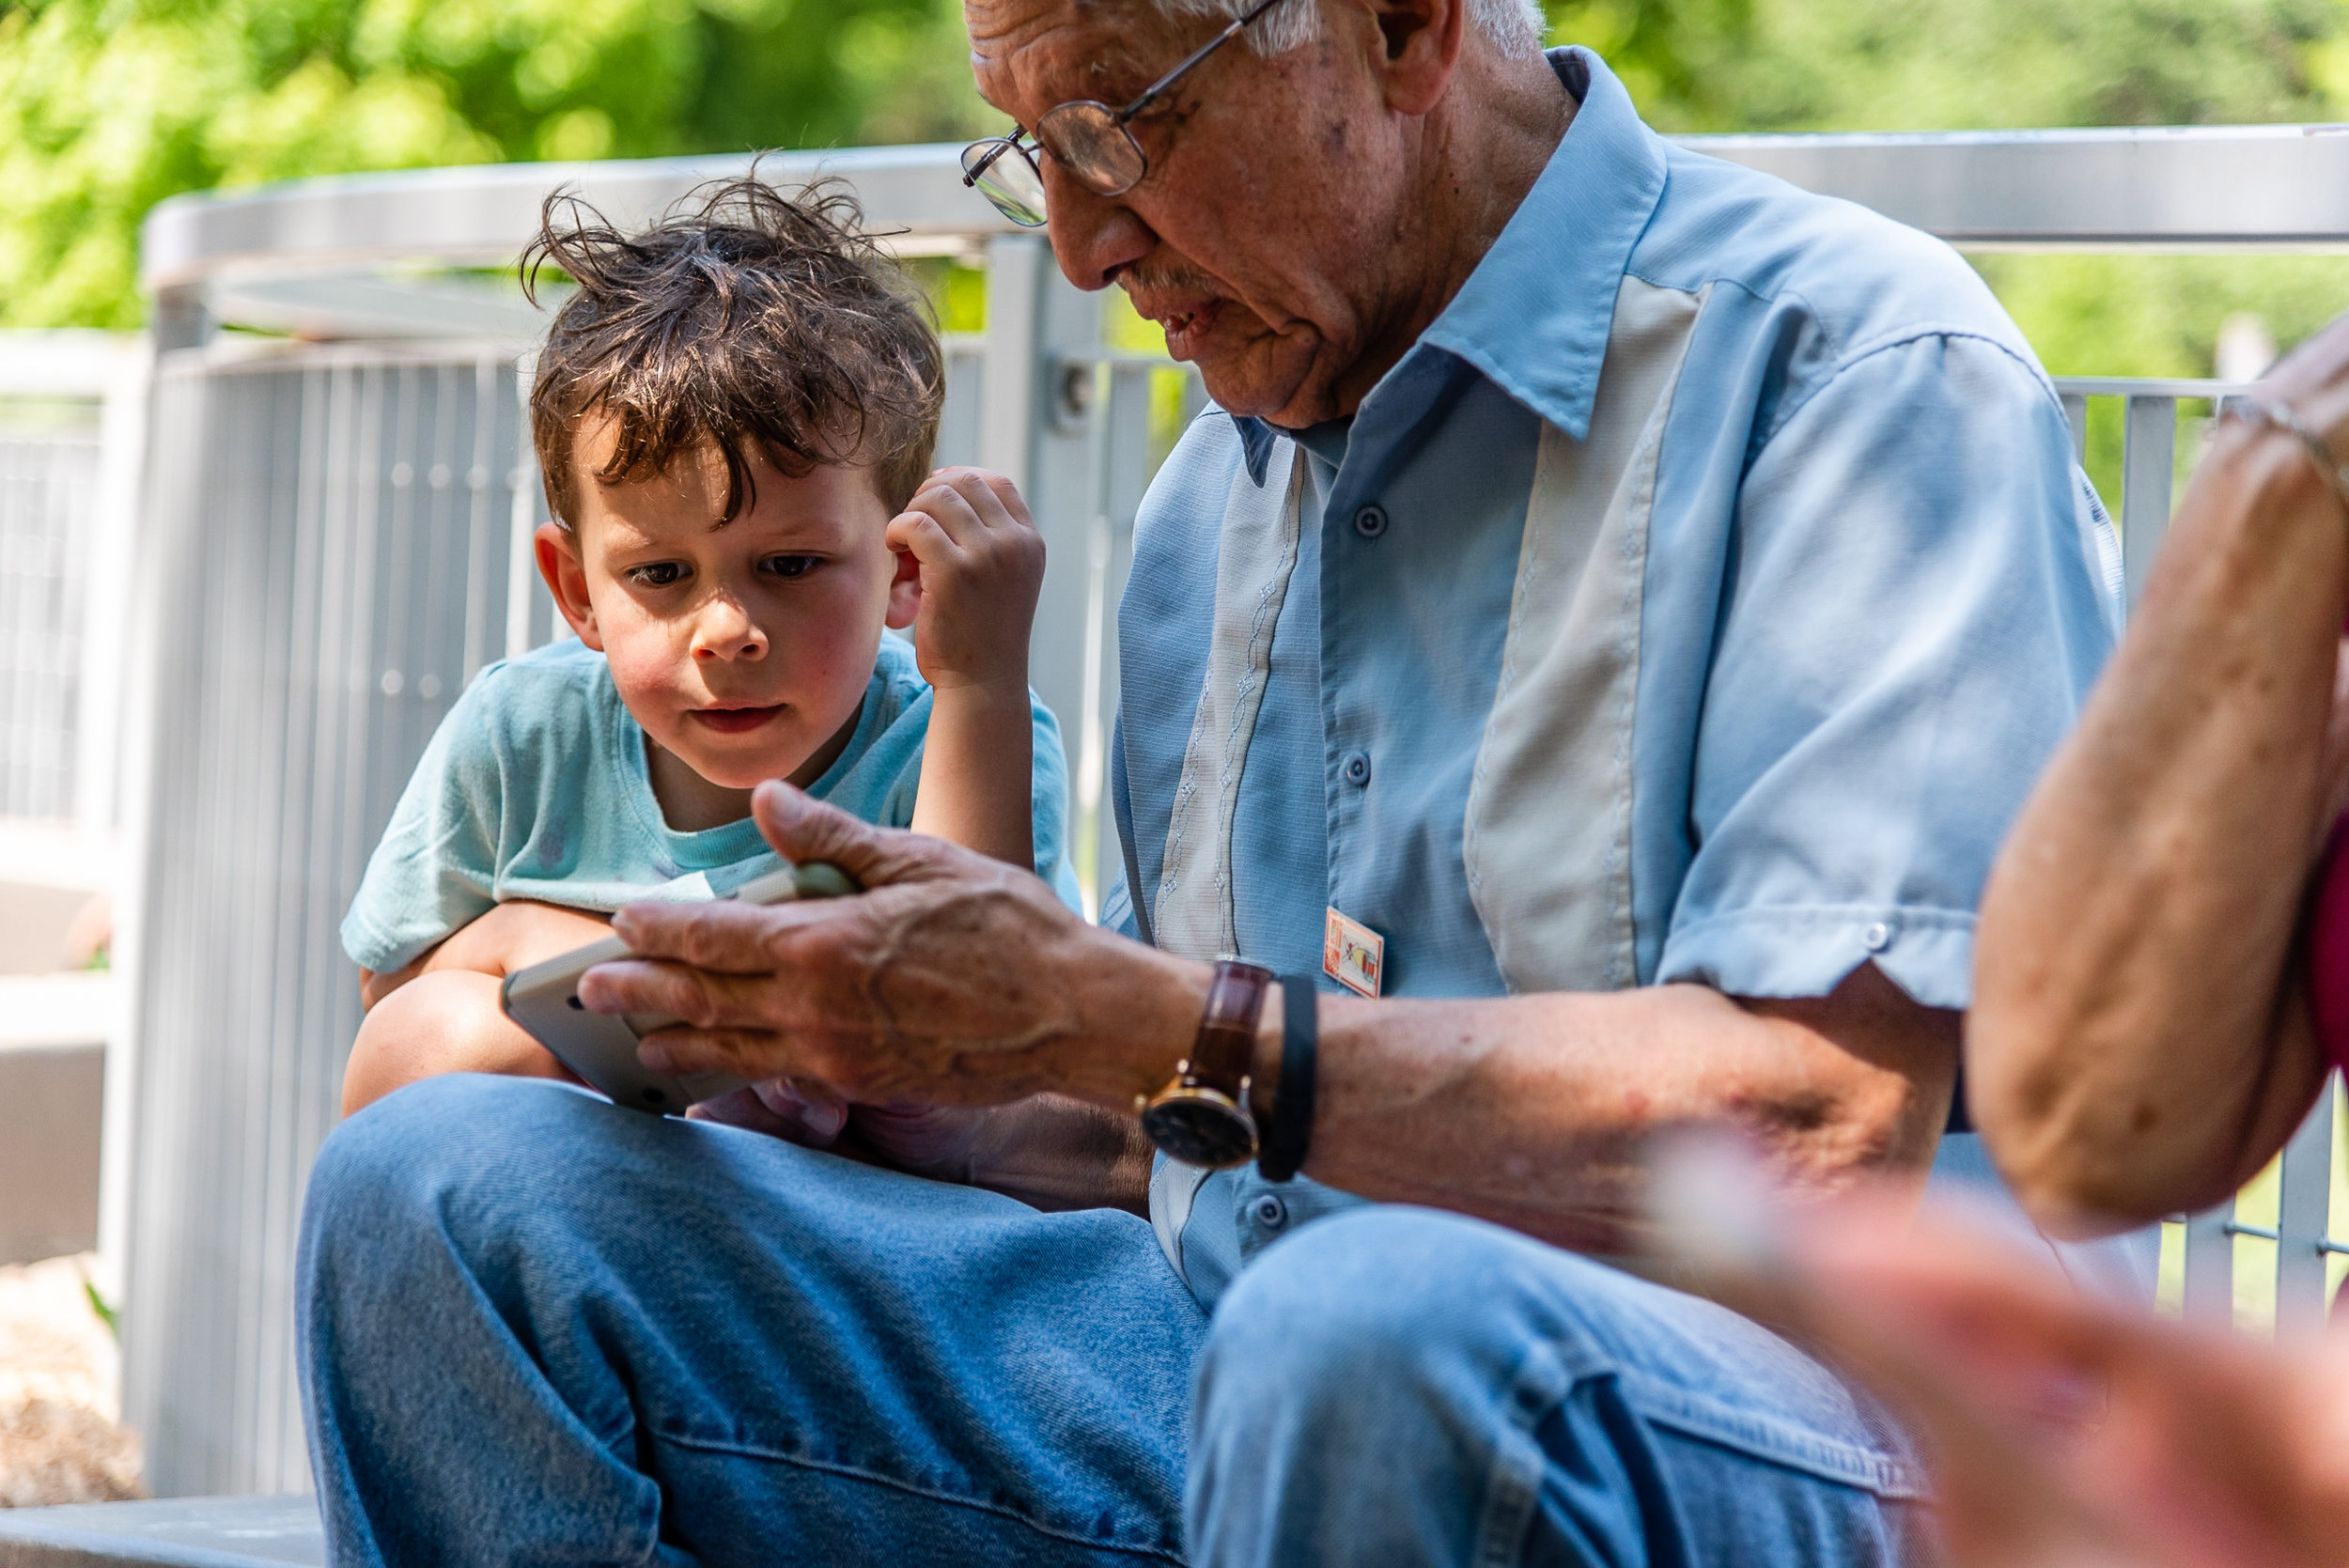 Grandfather and grandson with cell phone by Northern Virginia Family Photographer Nicole Sanchez